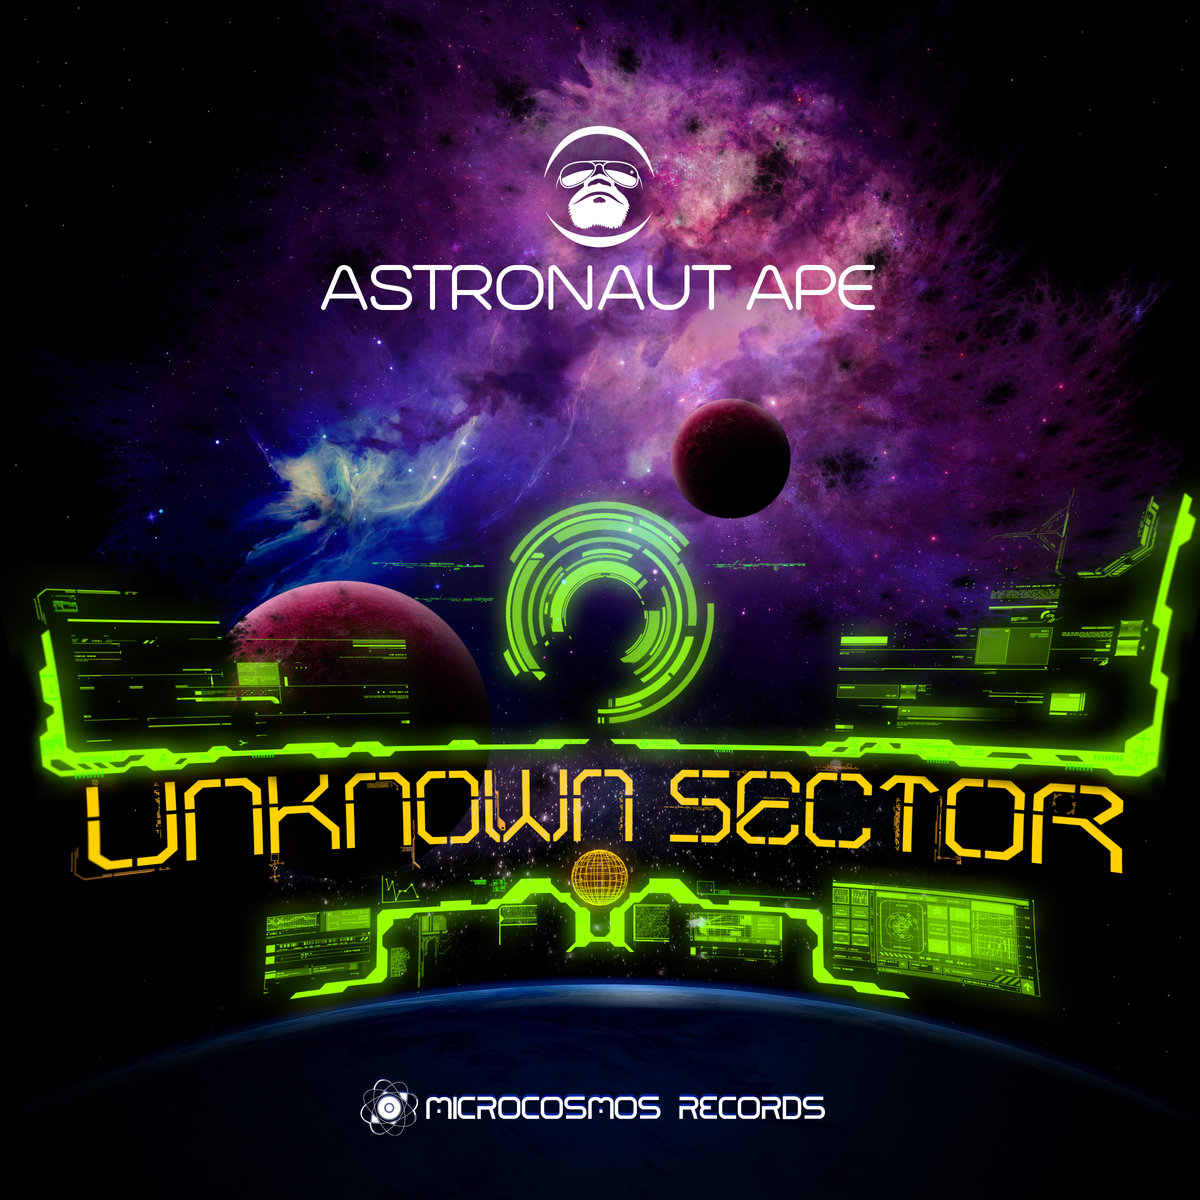 Astronaut Ape - Unknown Sector @ 'Unknown Sector' album (ambient, chill-out)